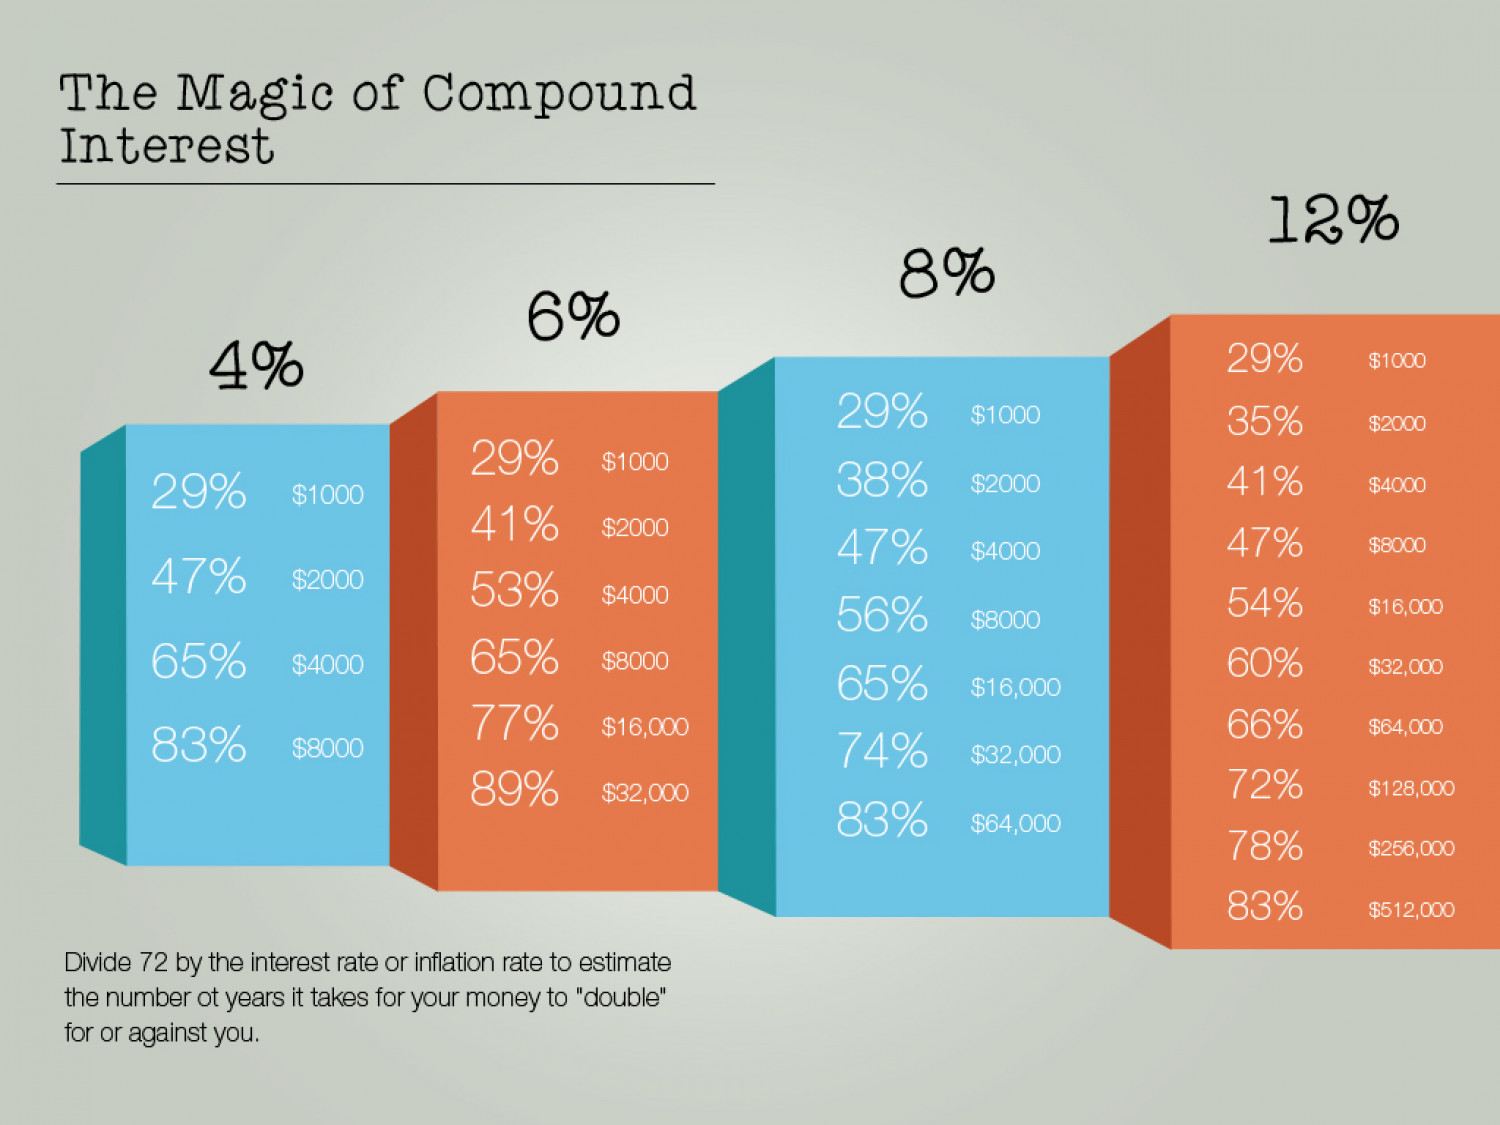 The Magic of Compound Interest Infographic